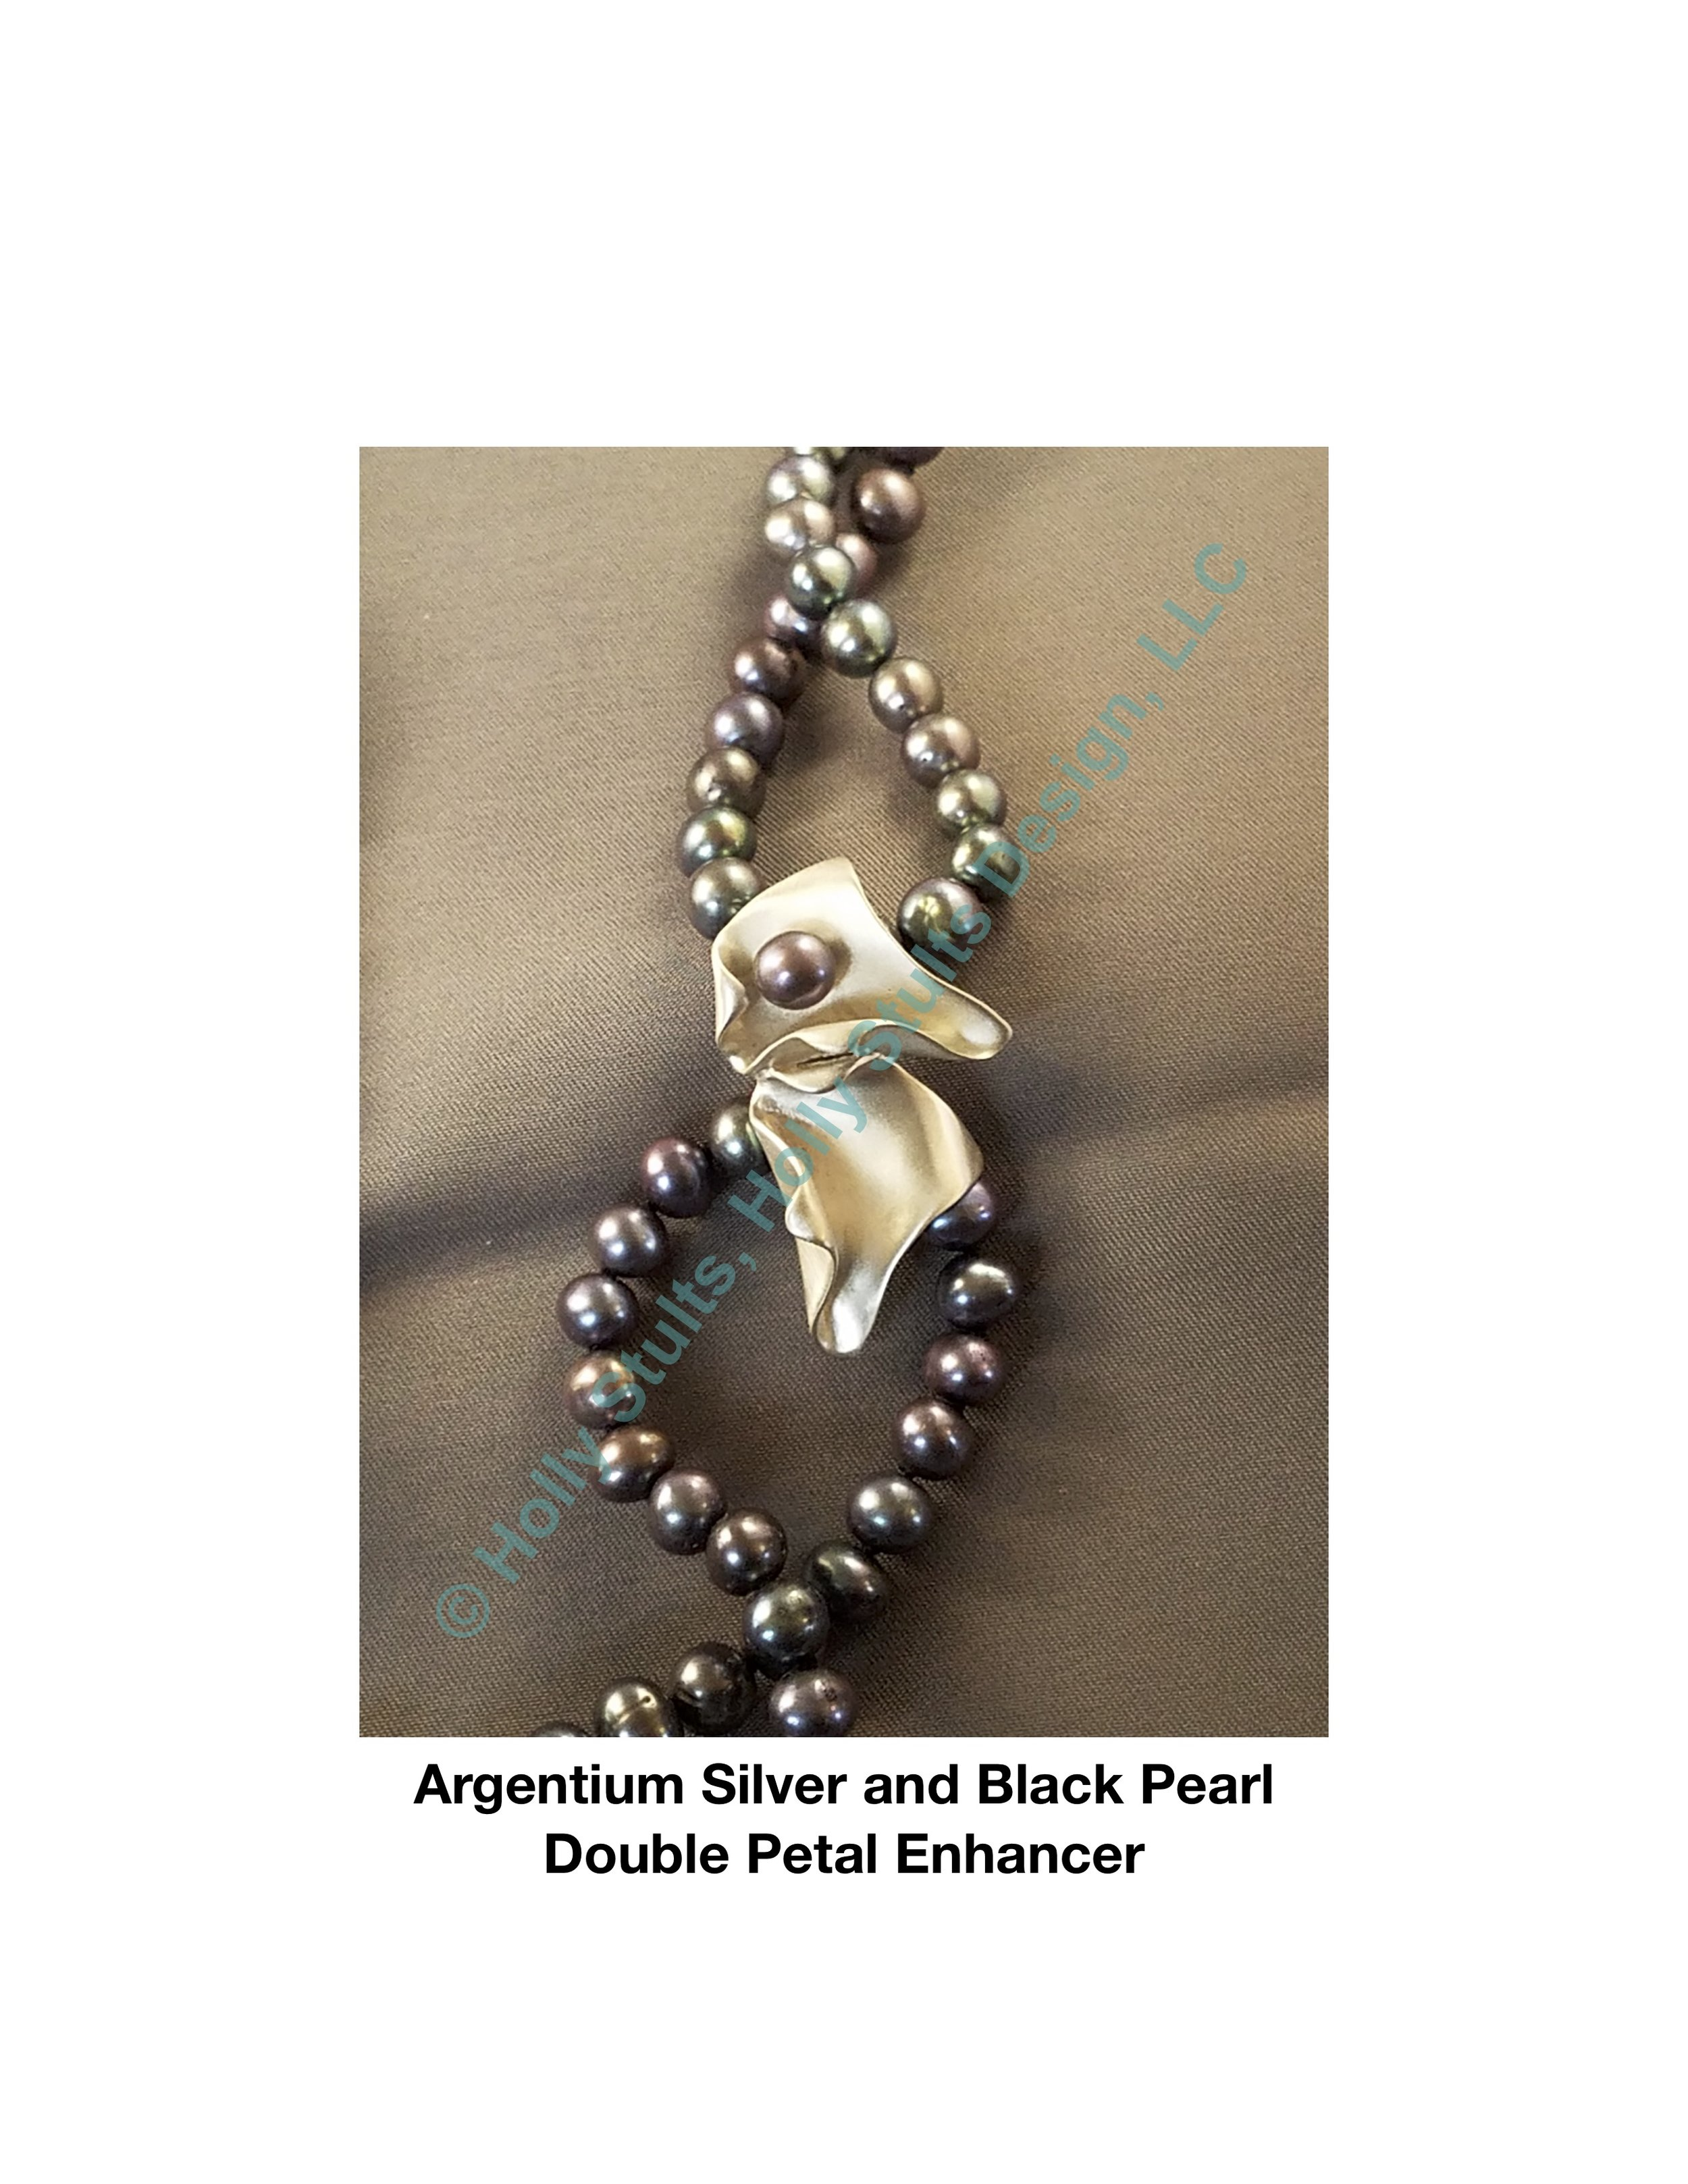 Argentium Silver and Black Pearl Double Petal Enhancer.jpg